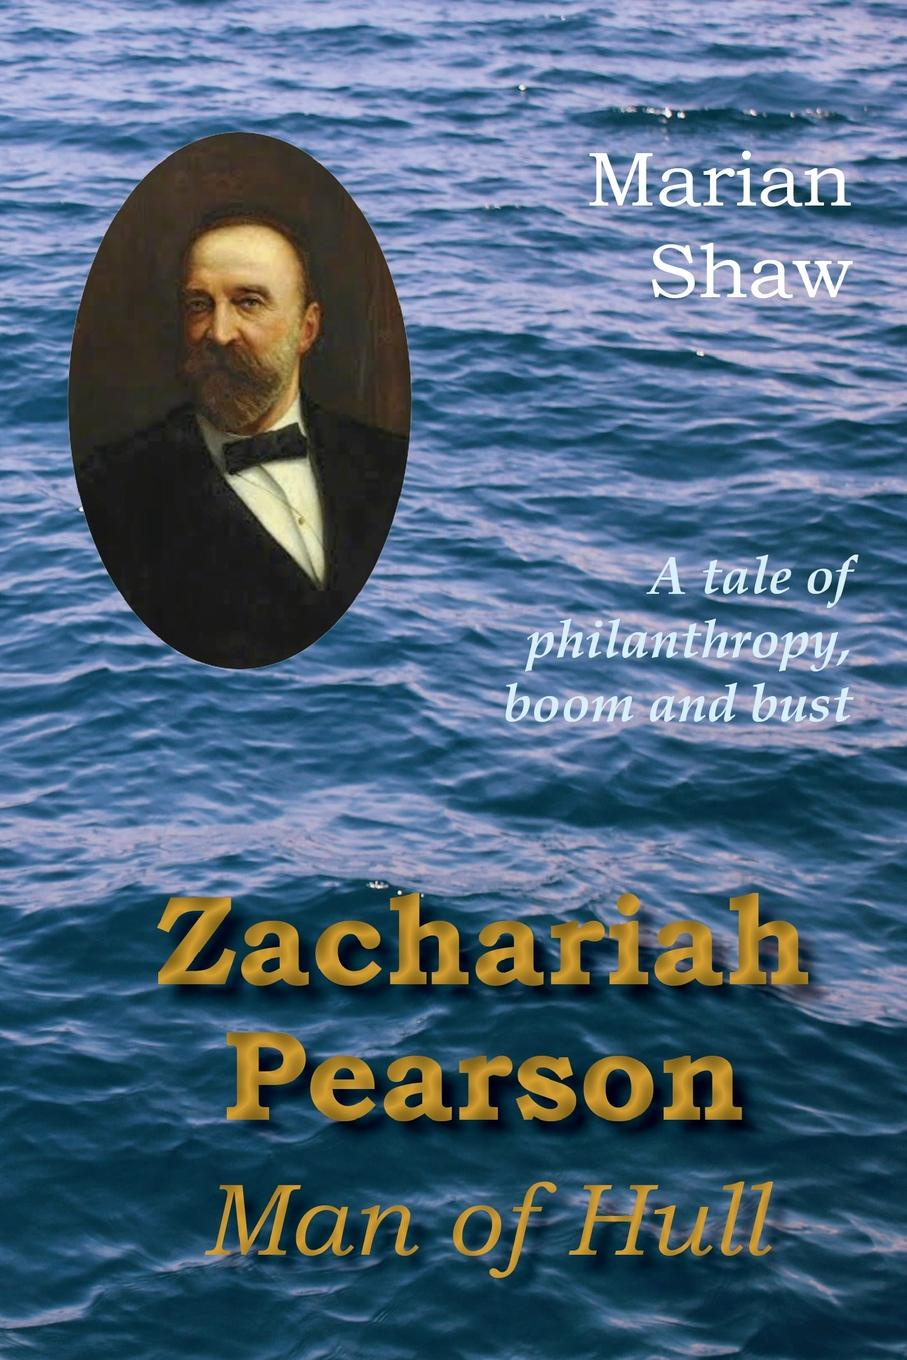 Marian Shaw Zachariah Pearson. Man of Hull: A Tale of Philanthropy, Boom and Bust malcolm kemp extreme events robust portfolio construction in the presence of fat tails isbn 9780470976791